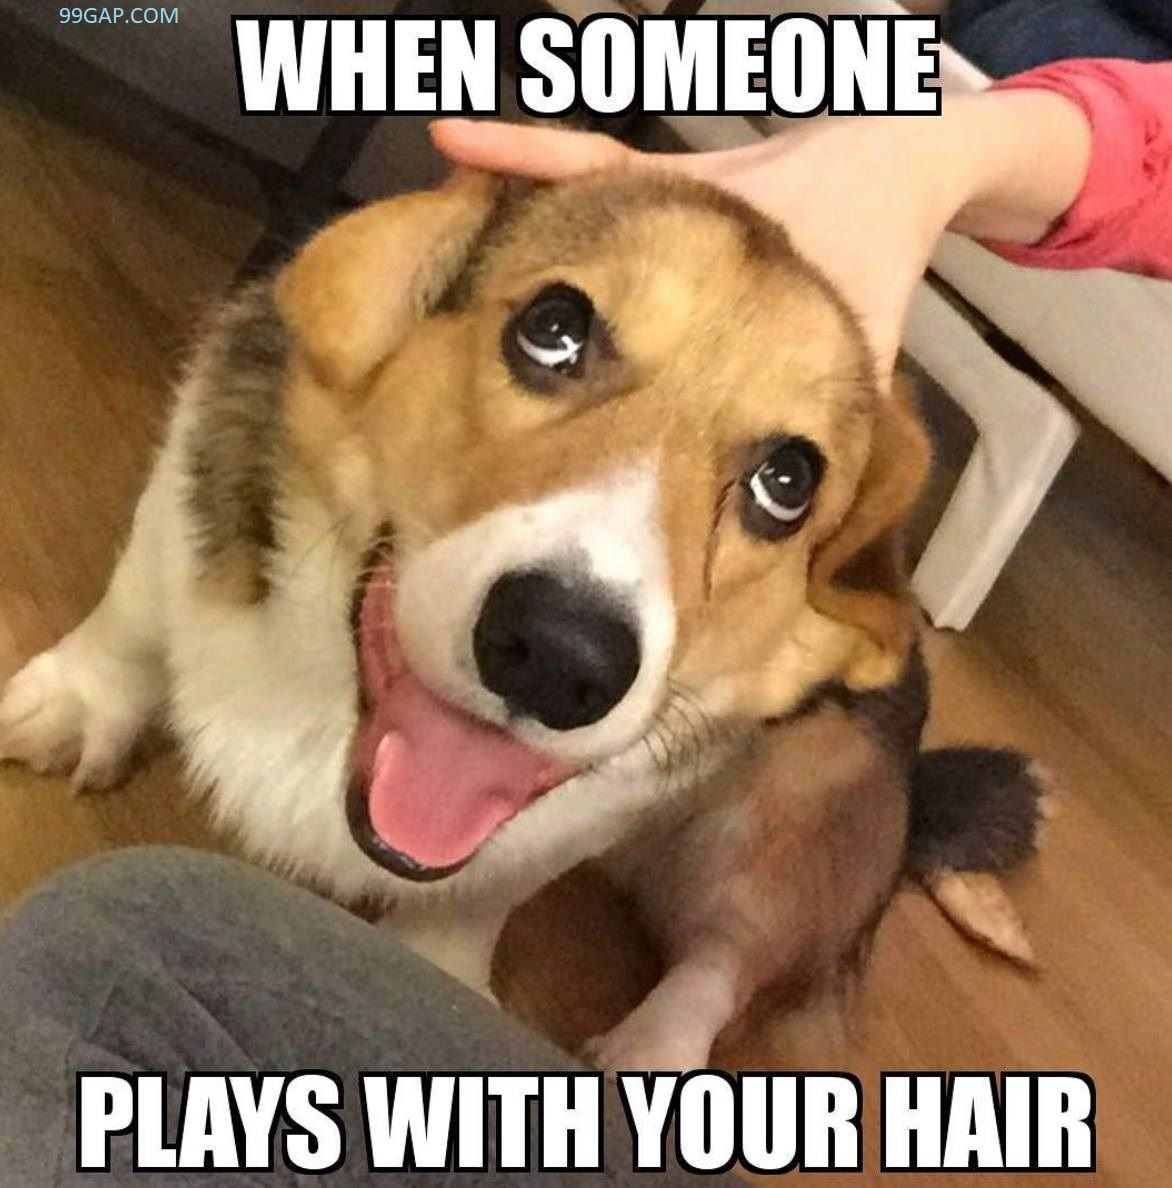 Funny Meme Of The Day ft. Funny Dog dogsfunnymeme